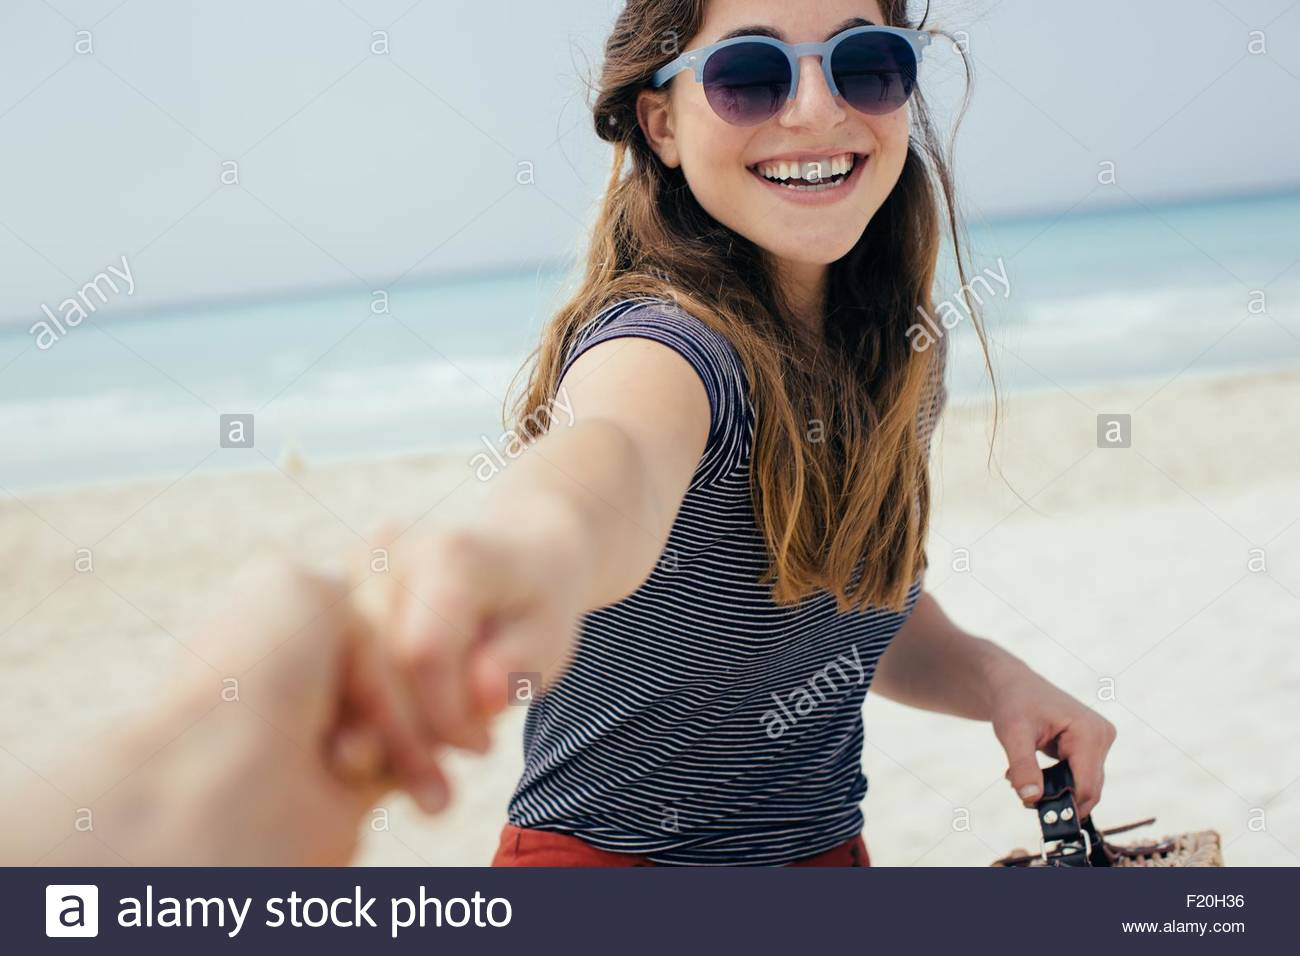 Portrait of young woman holding meilleurs amis sur Main Beach Photo Stock